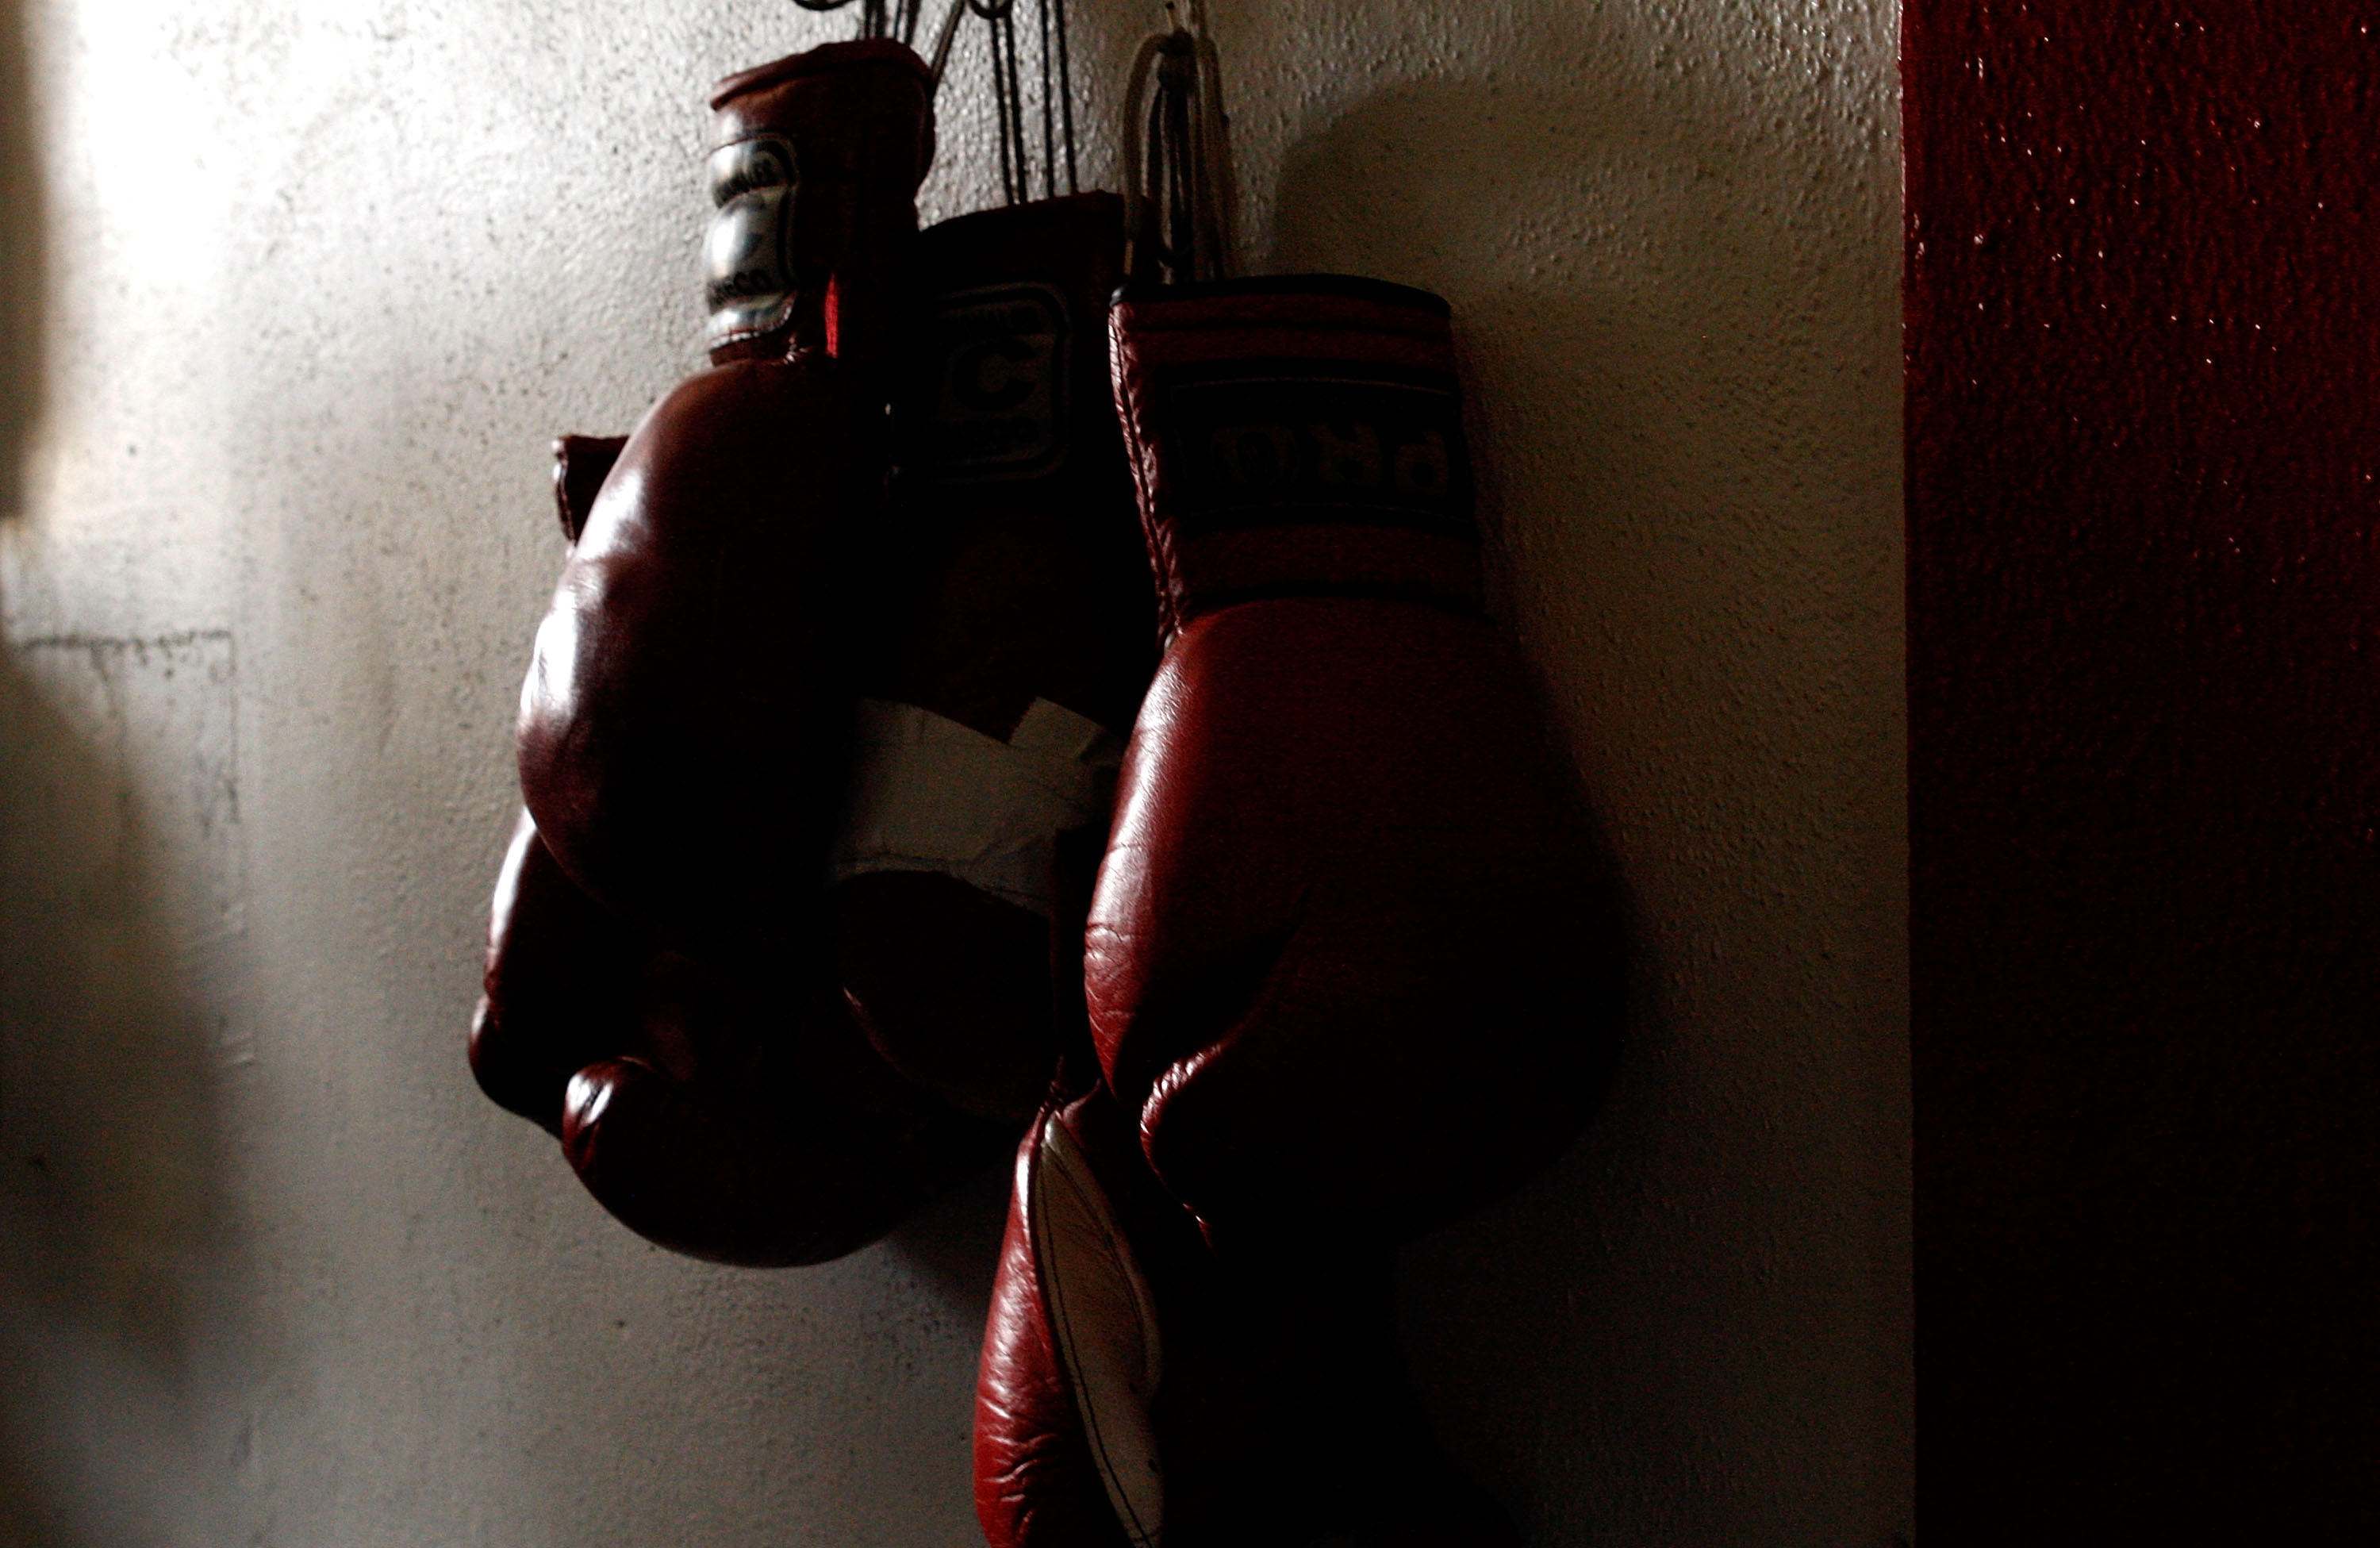 LOS ANGELES, CA - SEPTEMBER 29: Boxing gloves hang on the wall at the Urbina Westside Boxing Gym where Israel Vasquez Two-time Junior Featherweight World Champion had a workout session on September 29, 2009 in Los Angeles, California.  Vasquez will return